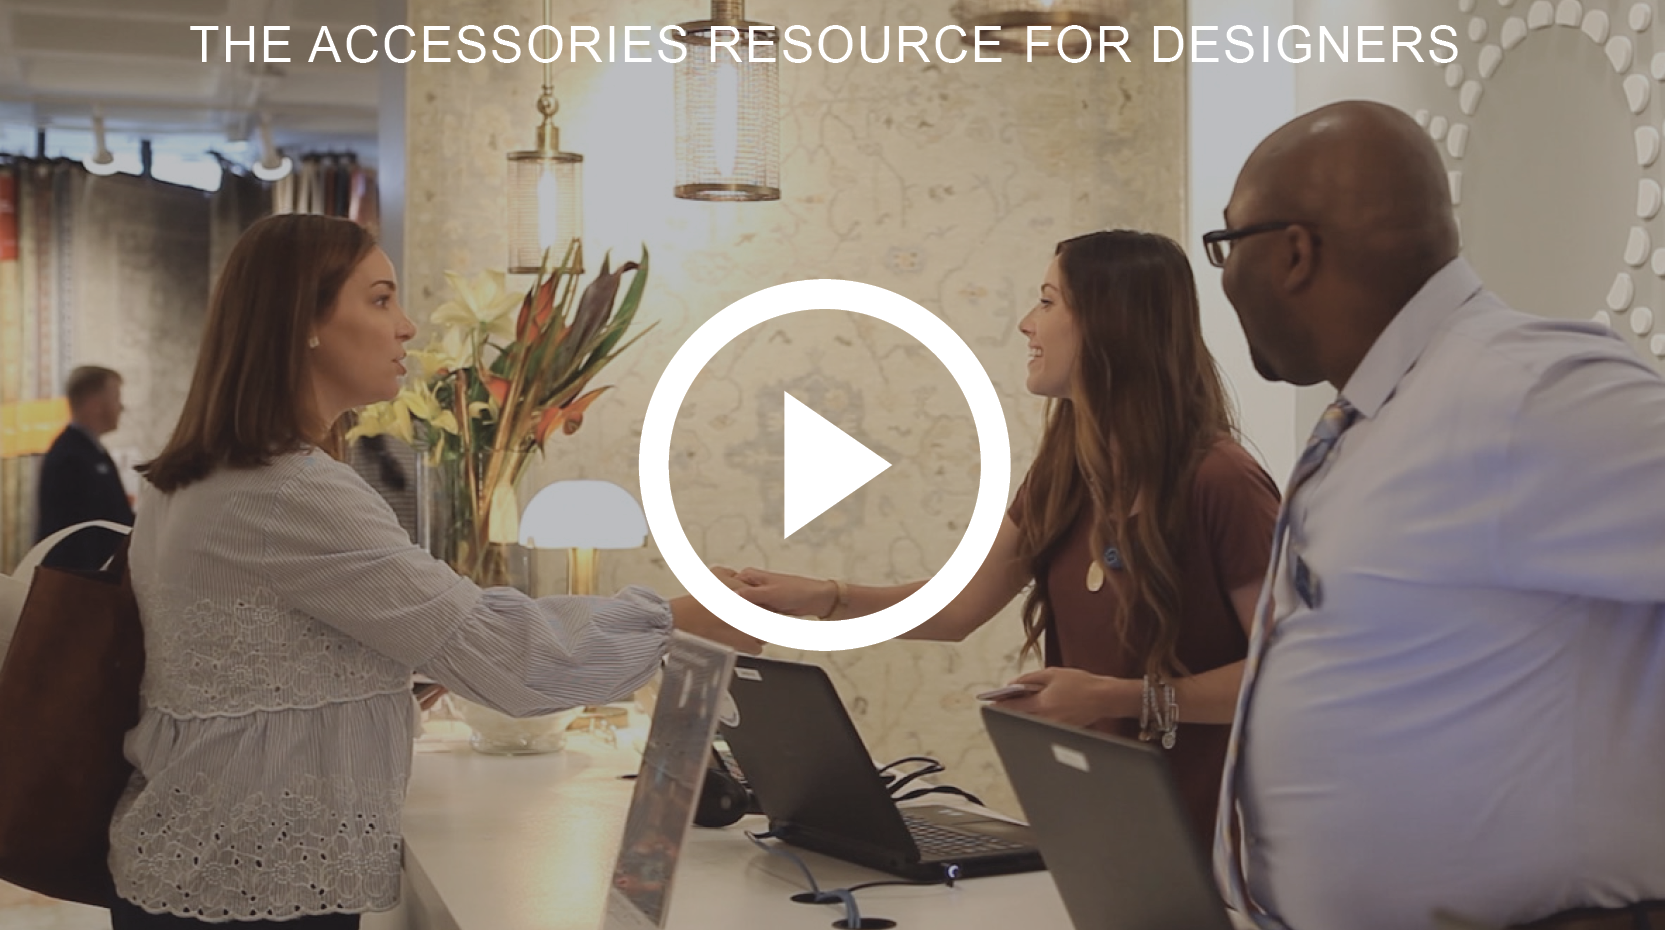 THE ACCESSORIES RESOURCE FOR DESIGNERS